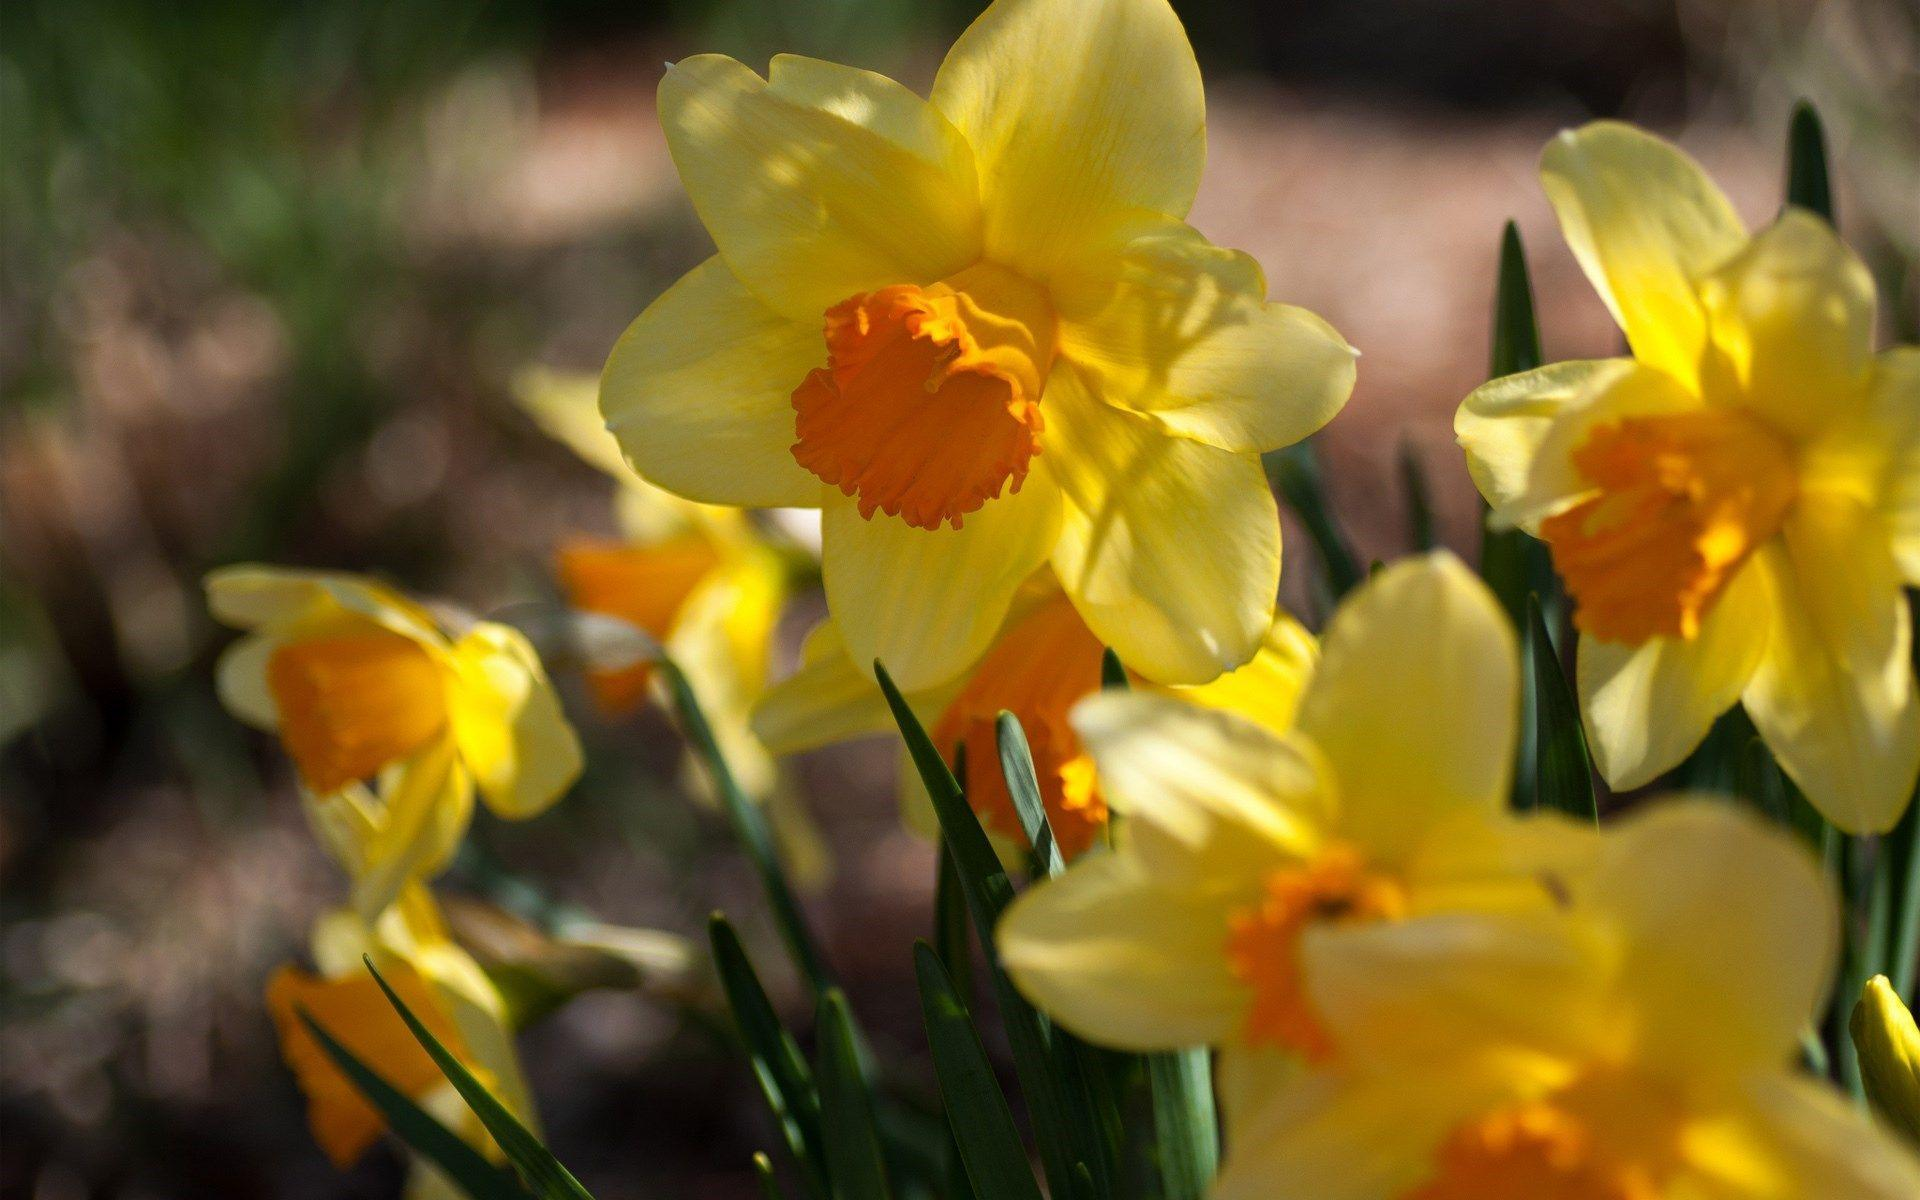 Daffodils Wallpaper Hd Daffodil Wallpapers Wallpaper Cave